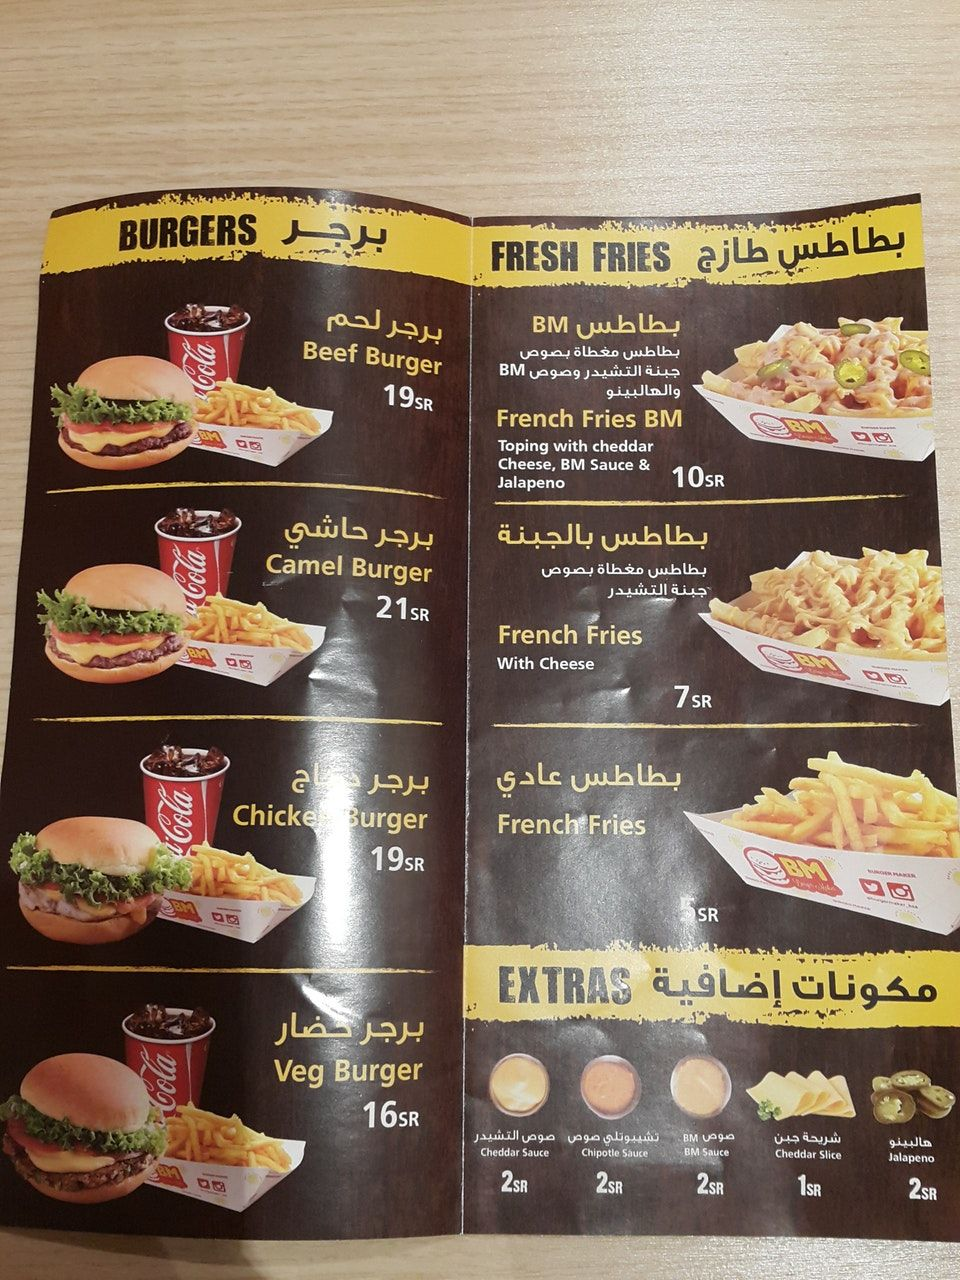 Burger Maker Burger Joint In Buraydah Burger Maker Burger French Fries With Cheese